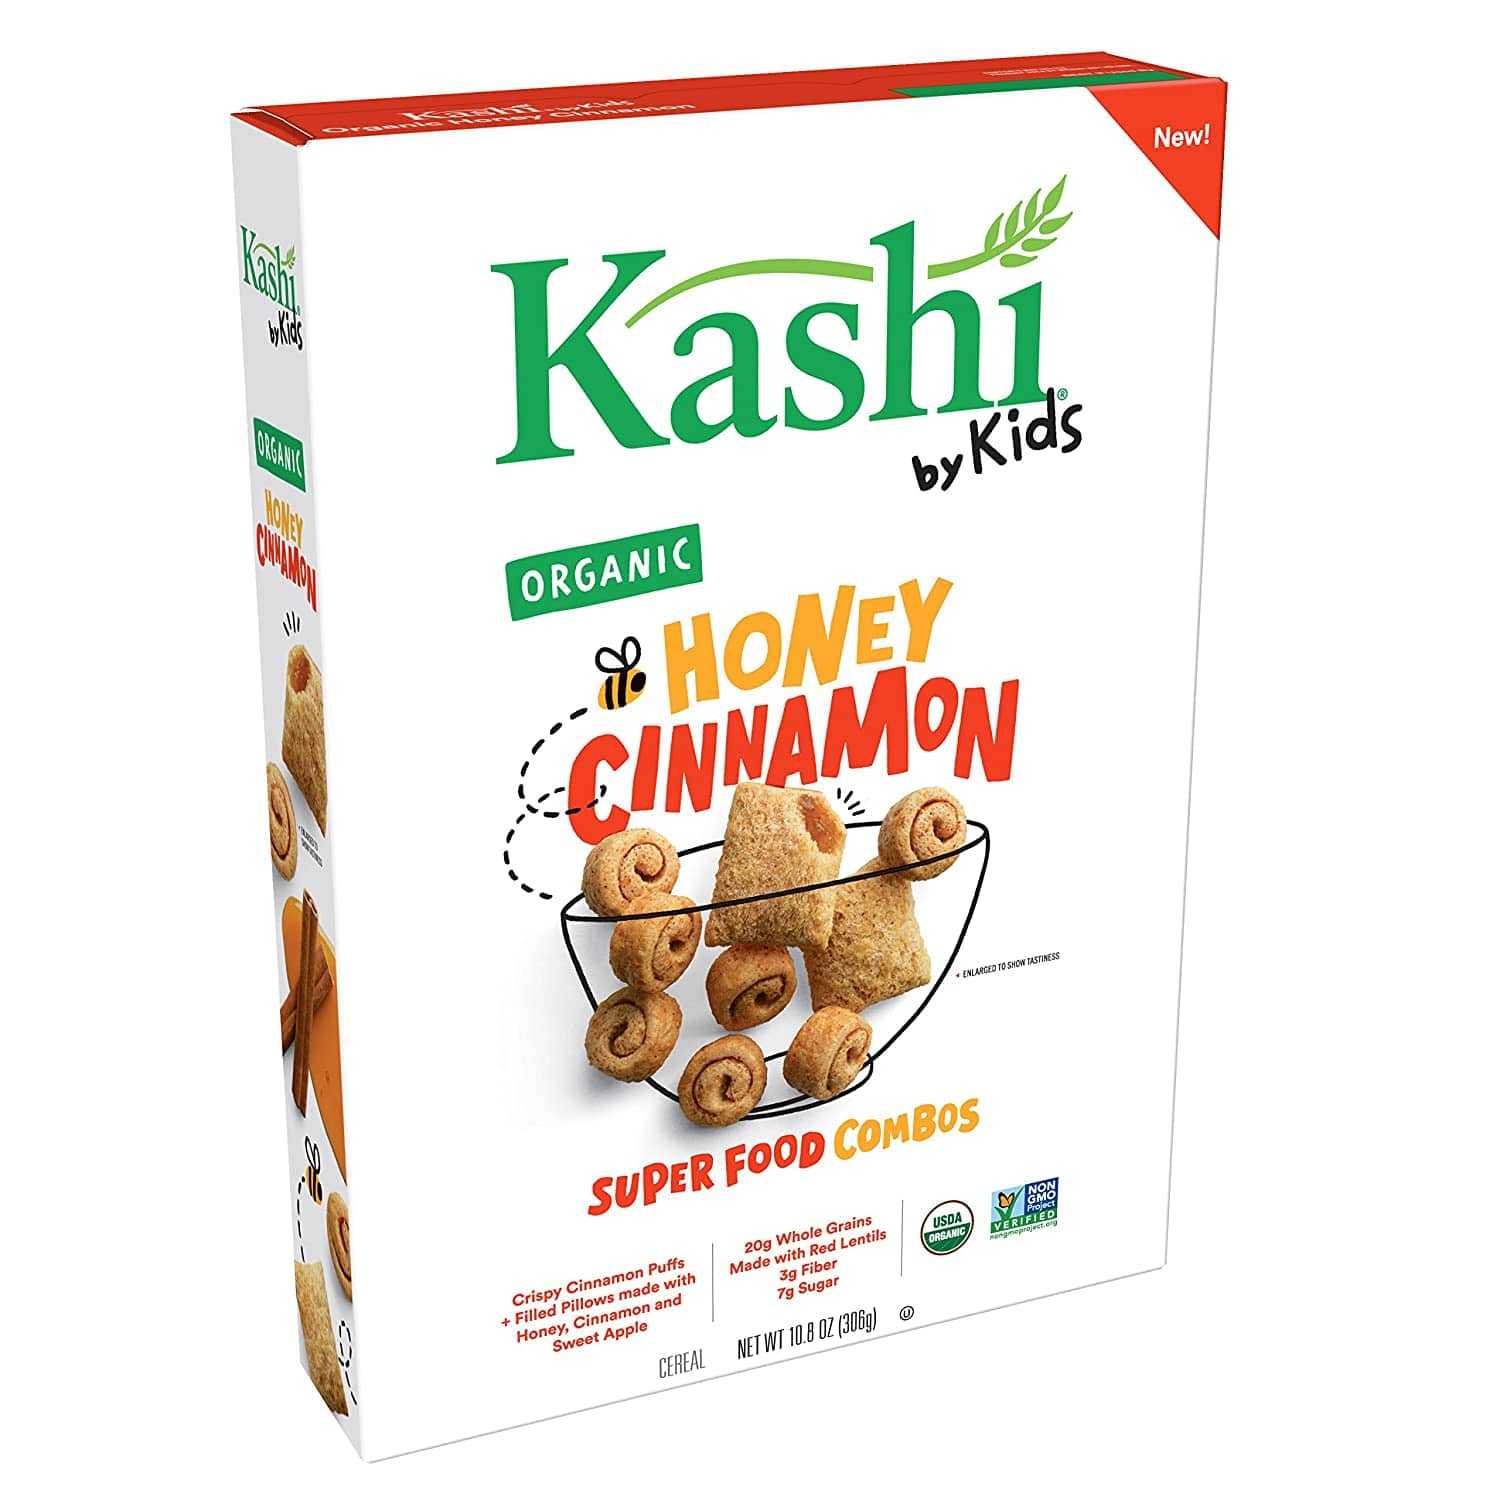 10-Boxes 10.8 Oz ea. Kashi by Kids Honey Cinnamon Cereal - Organic $18  w/s&s